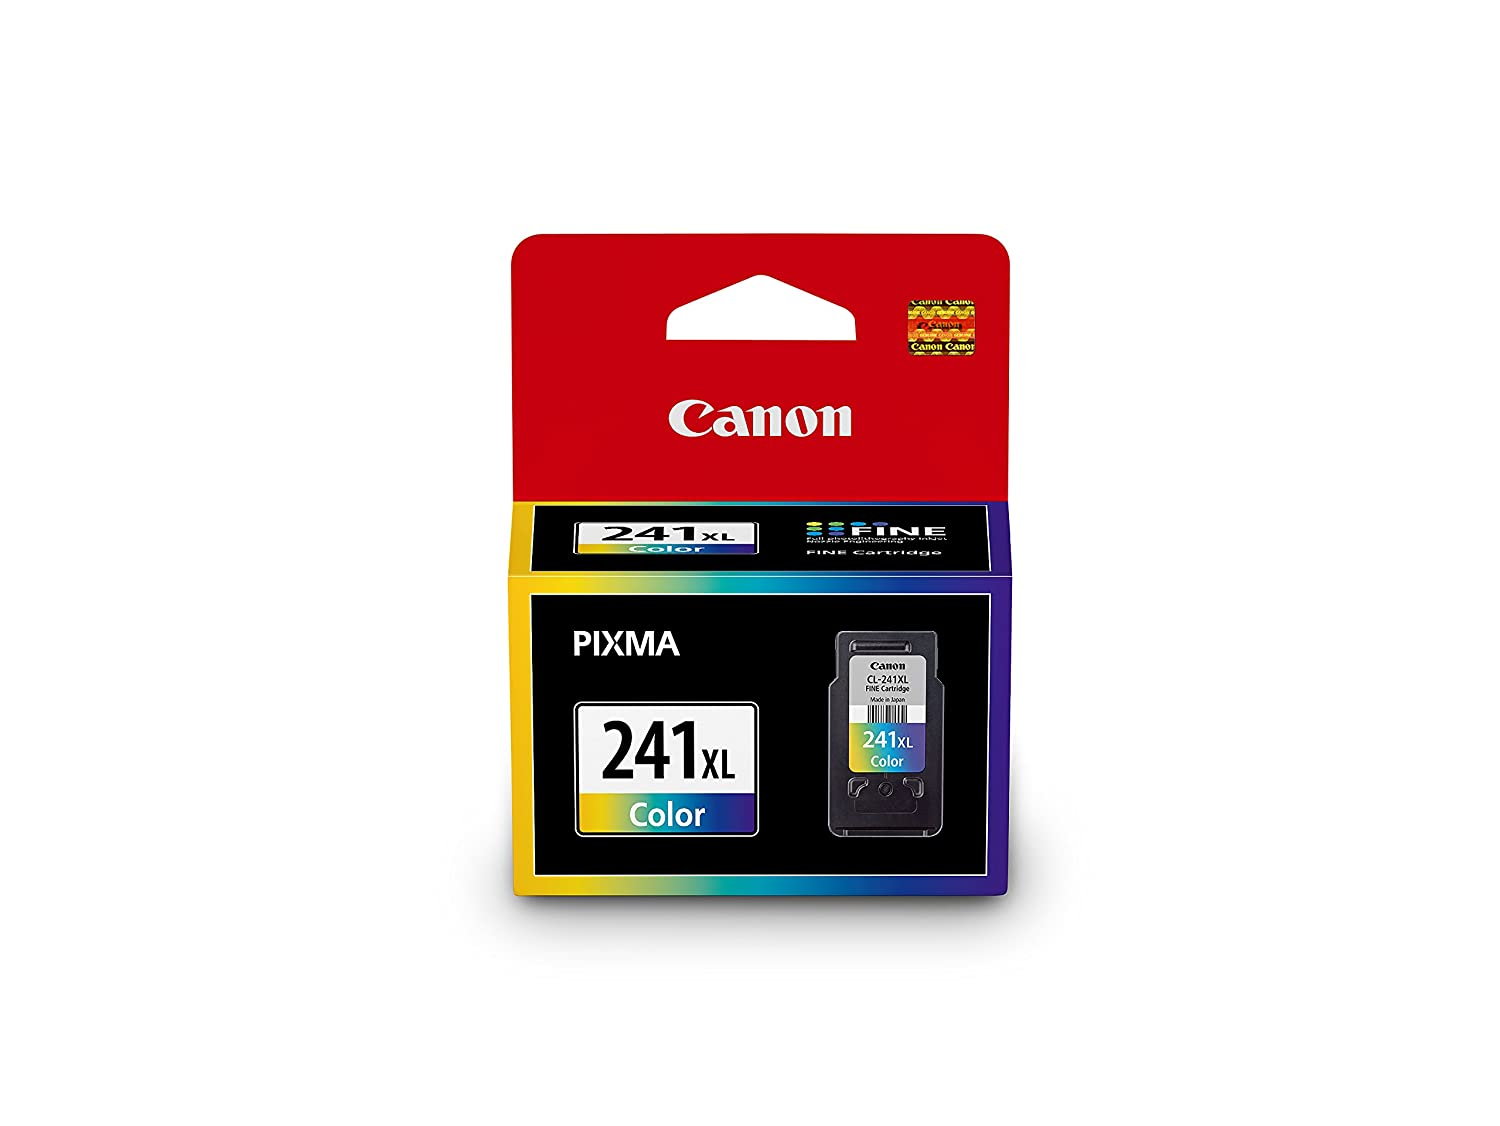 Canon CL-241XL Color Ink Cartridge, Compatible to MG3620,MG3520,MG4220,MG3220,MG2220, MG4120,MG3120 and MG2120